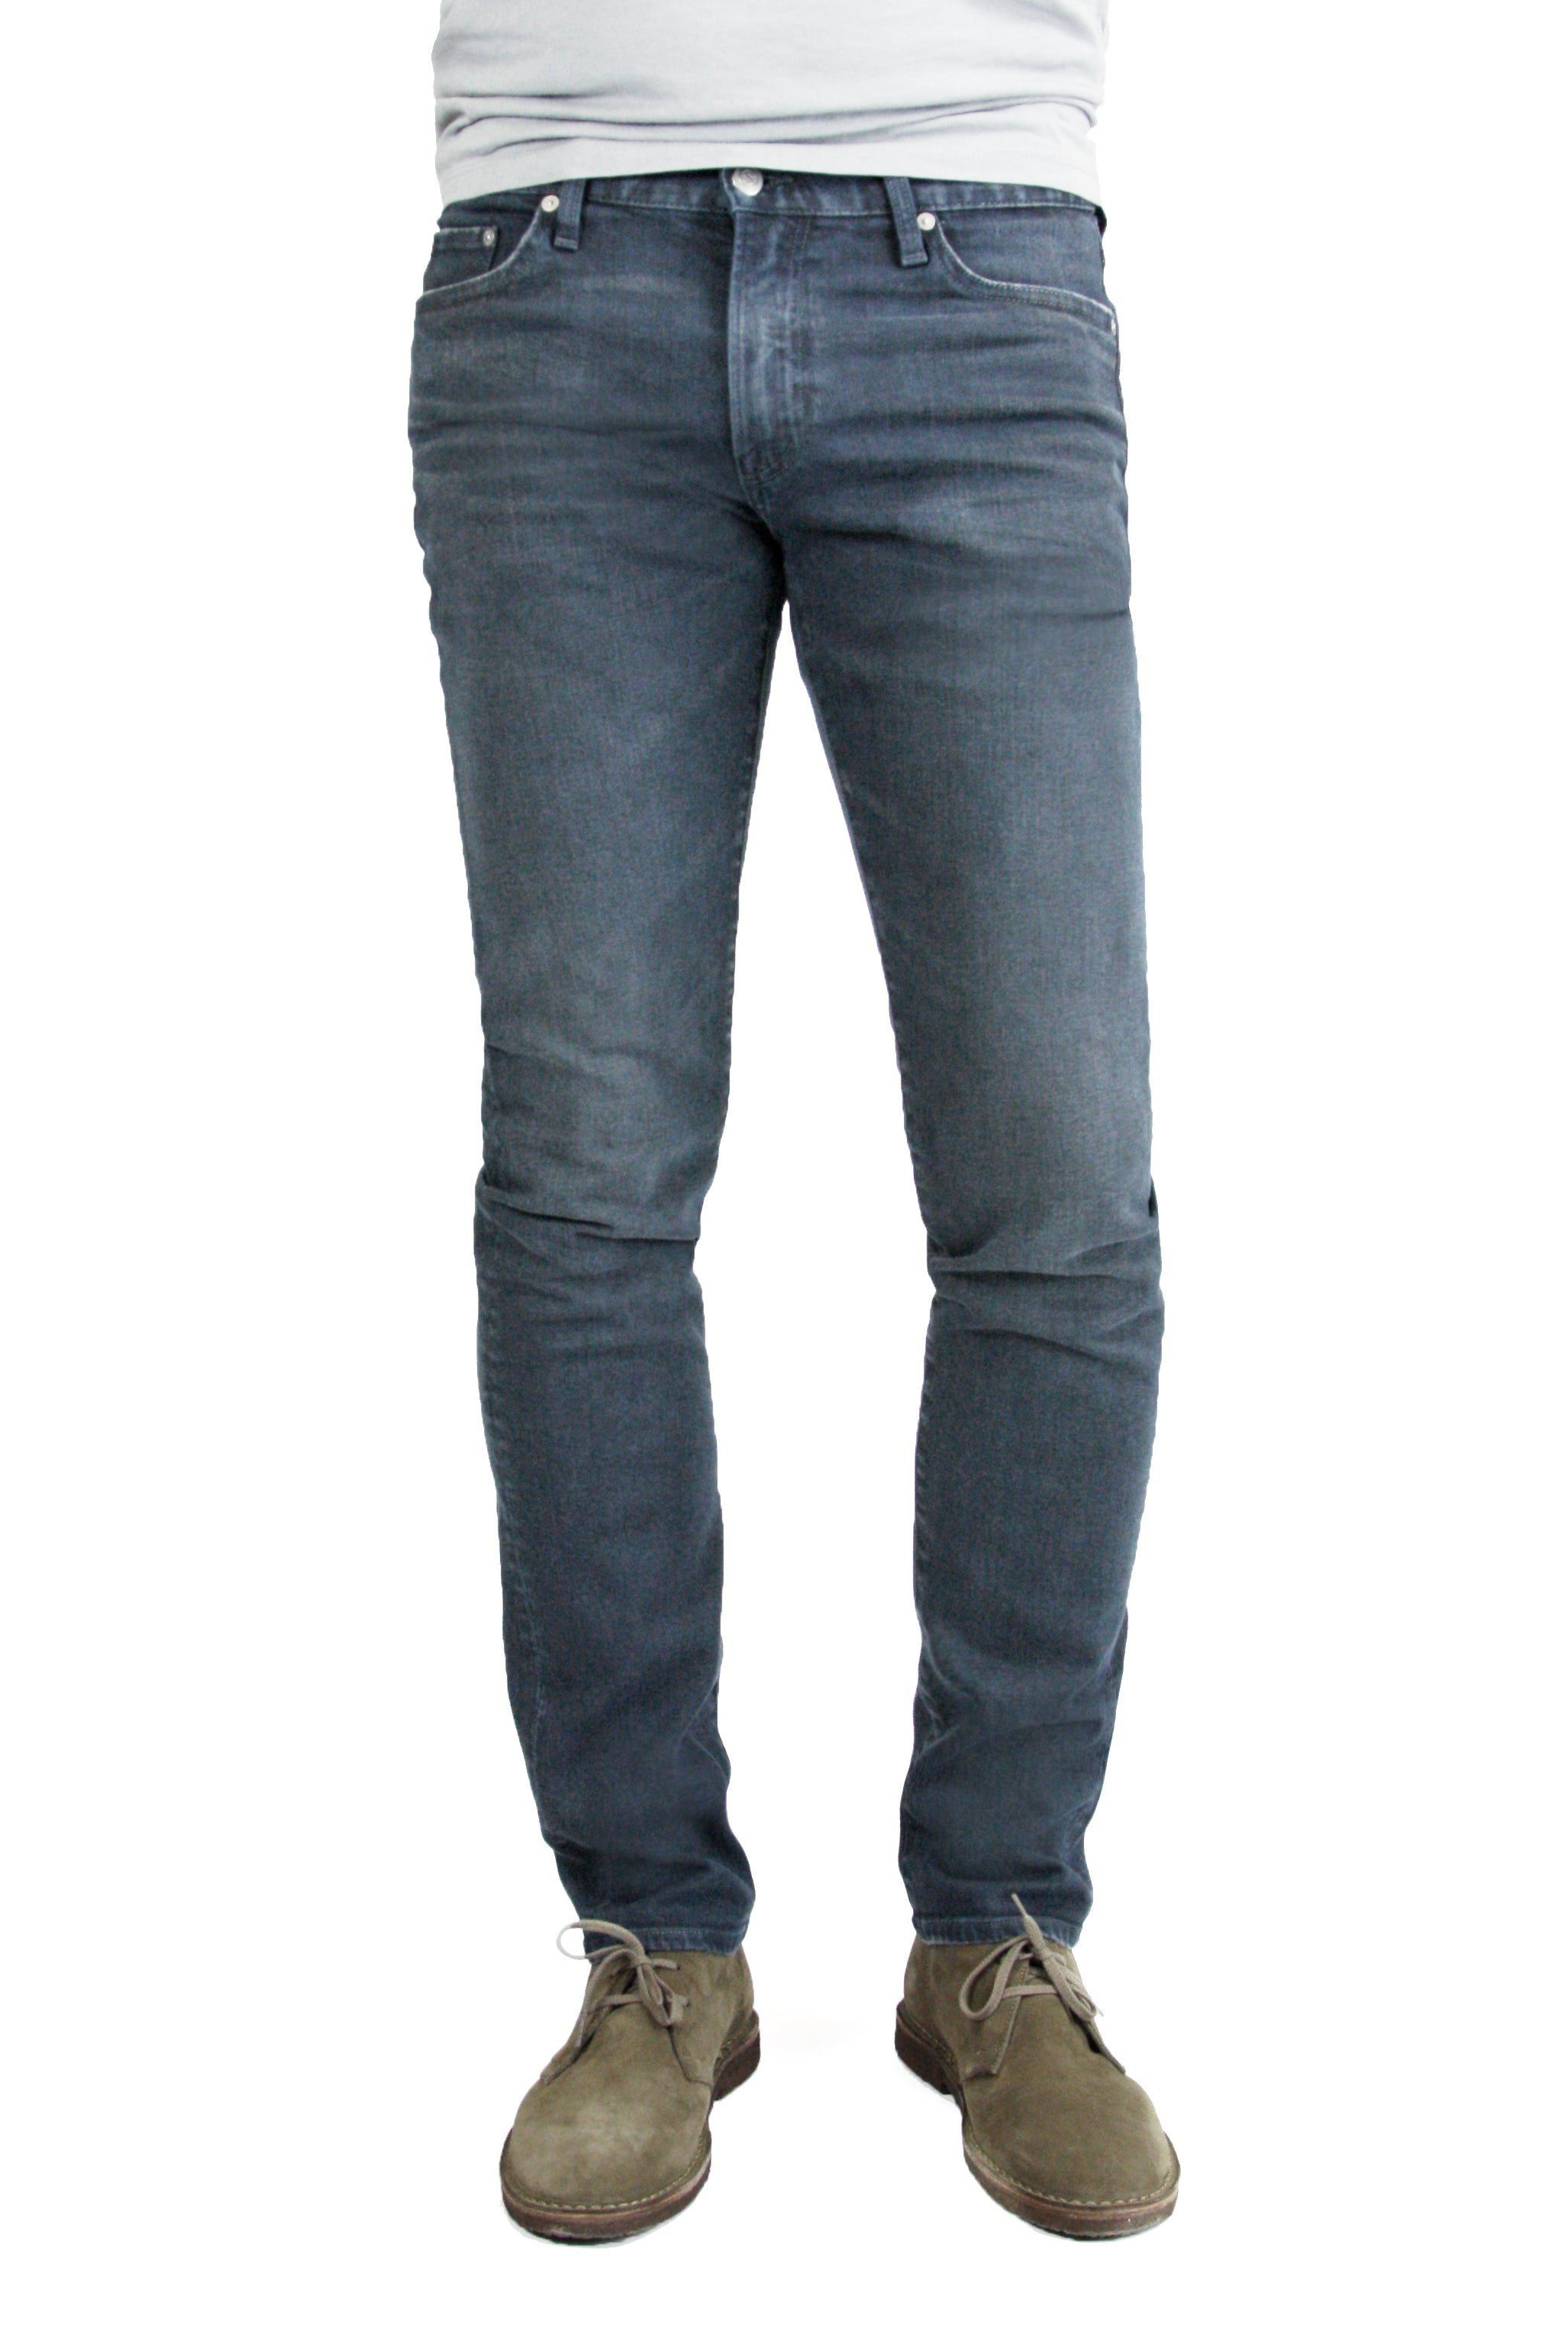 S.M.N Studio's Hunter in Berlin Men's Jeans - Comfort stretch tapered slim fit jeans made in a blue grey colored comfort stretch Japanese denim and contrasted lightly with fading and whiskers for a vintage worn-in appeal